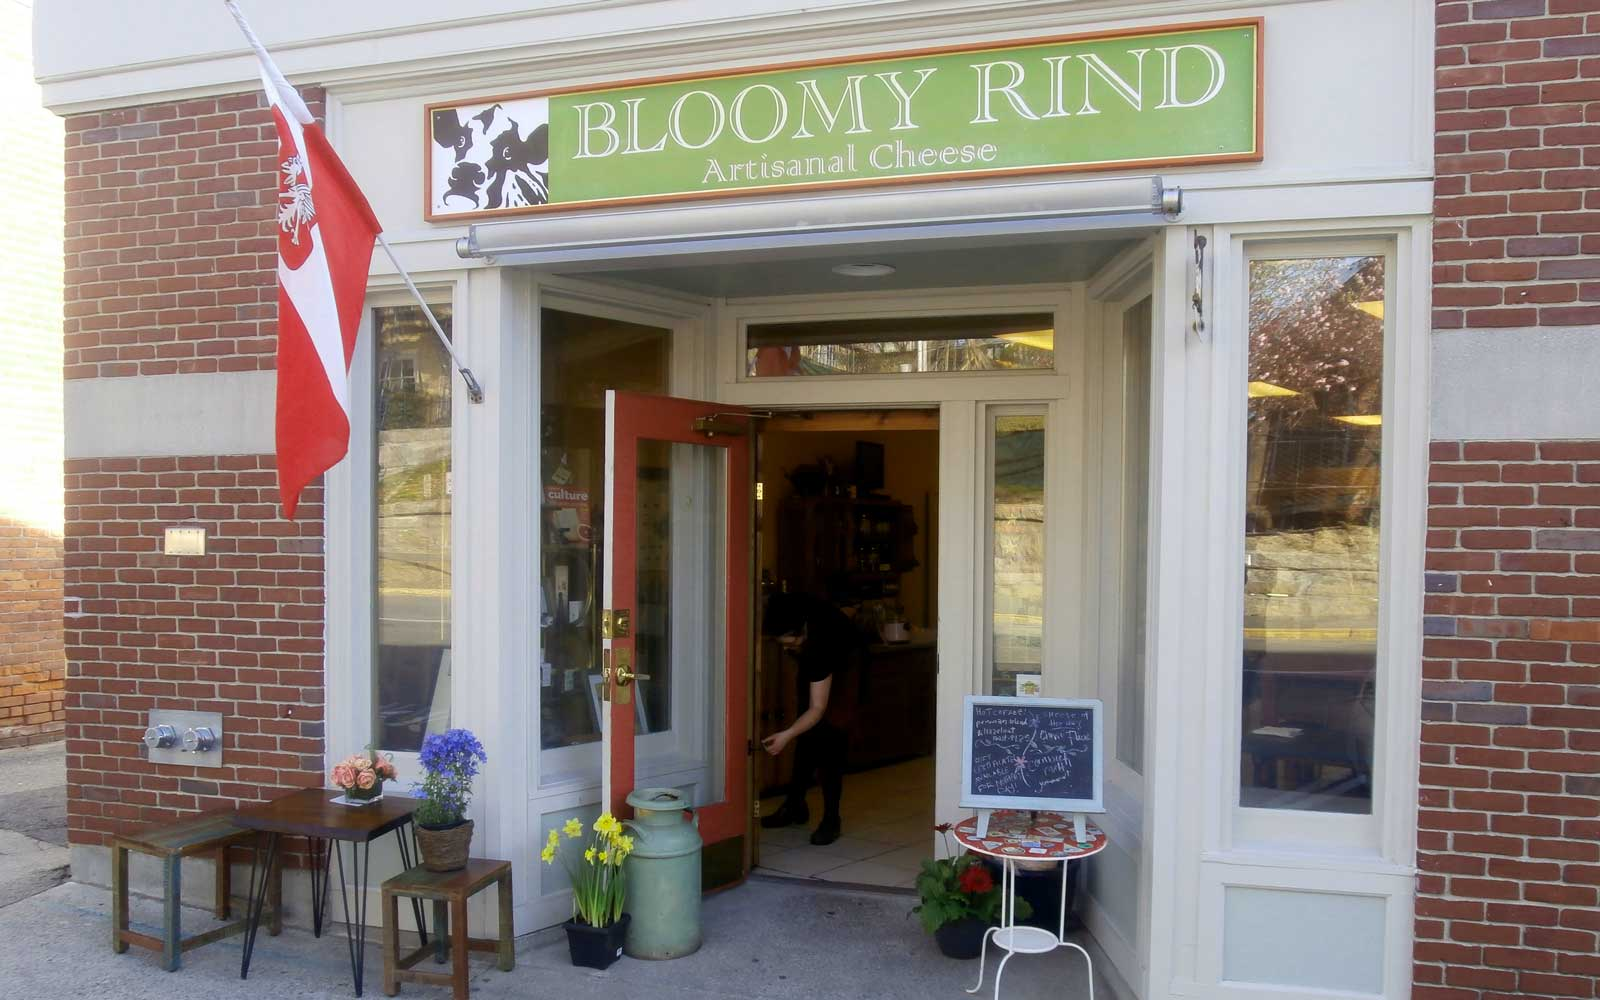 Bloomy Rind Cheese and Sandwich Shop, in Hingham Massachusetts